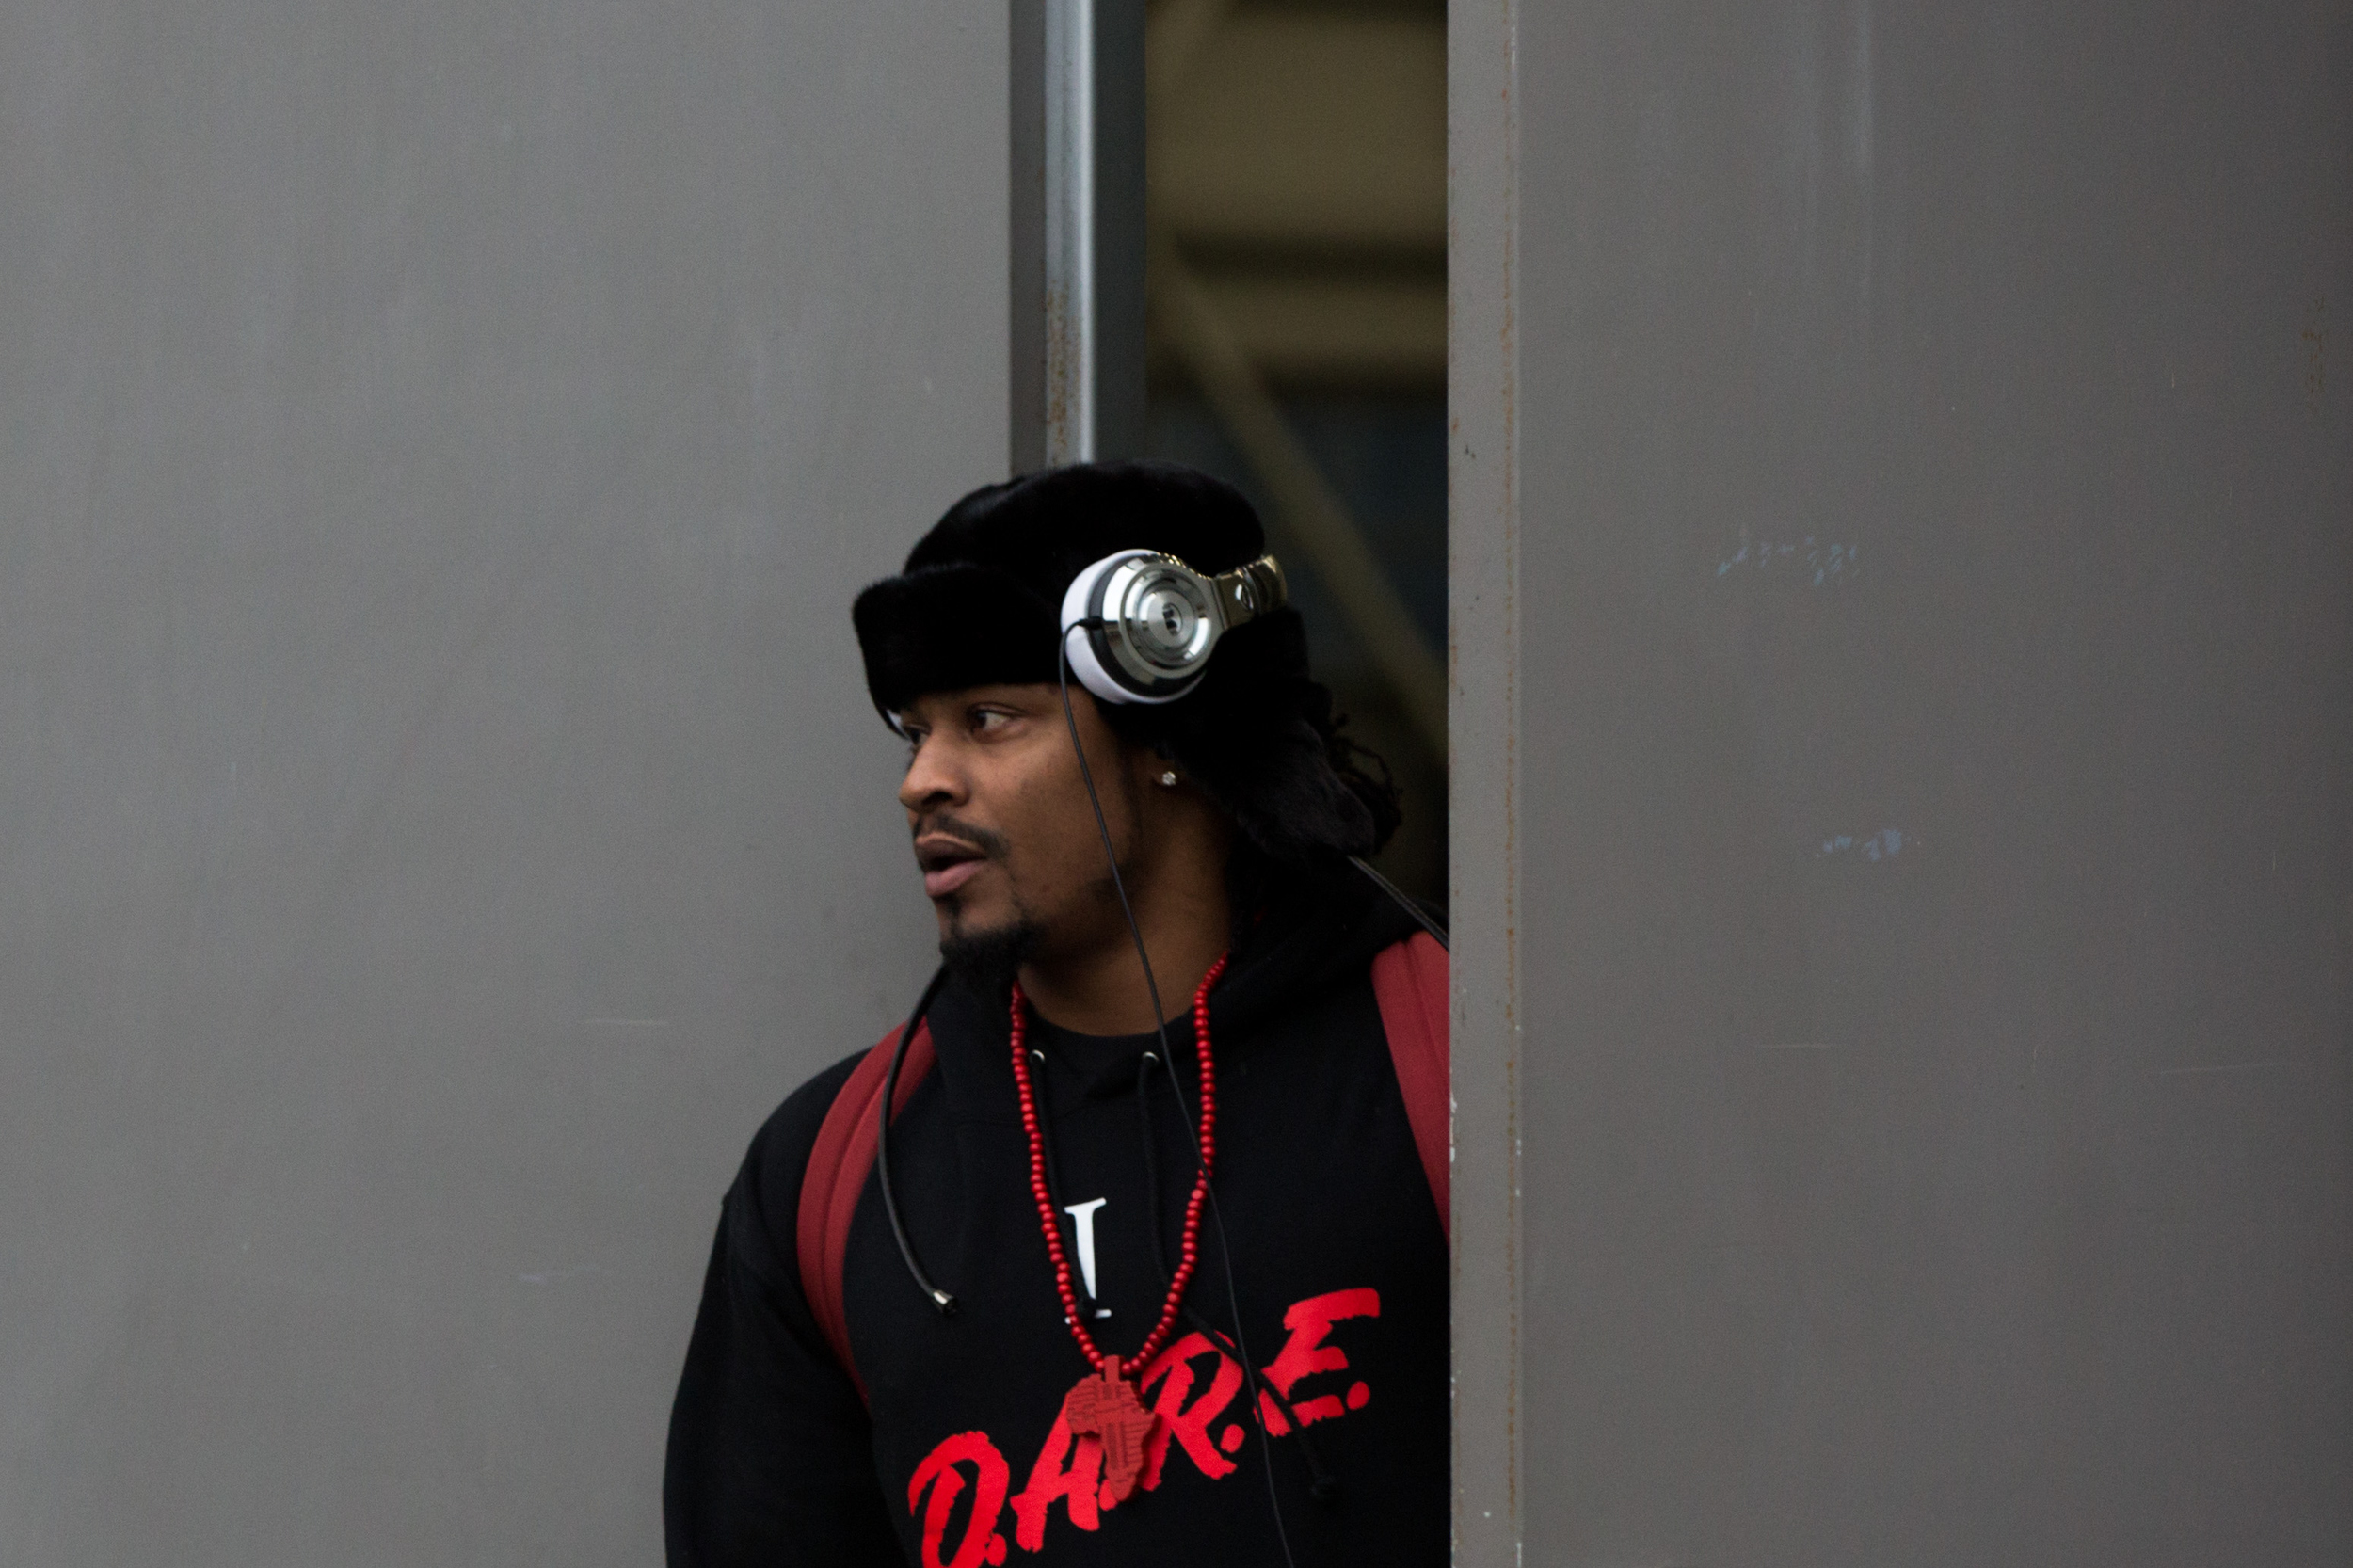 Seattle Seahawks running back Marshawn Lynch leaves the Virginia Mason Athletic Center to board a bus to travel to the team's NFL football game Sunday against the Carolina Panthers, Friday, Jan. 15, 2016, in Seattle. (Grant Hindsley/seattlepi.com via AP)